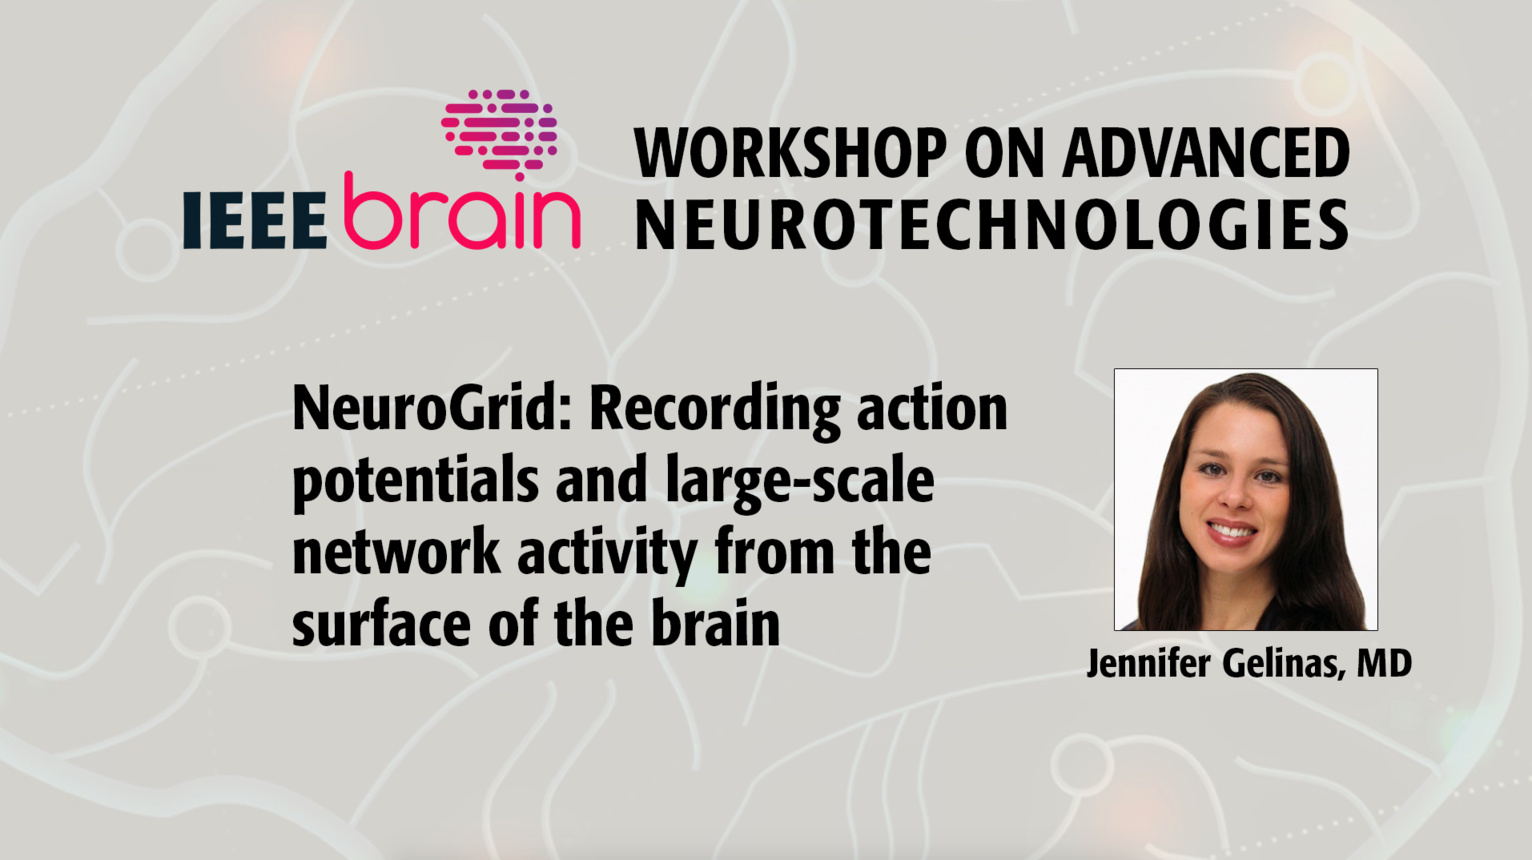 NeuroGrid: Recording action potentials and large-scale network activity from the surface of the brain - IEEE Brain Workshop